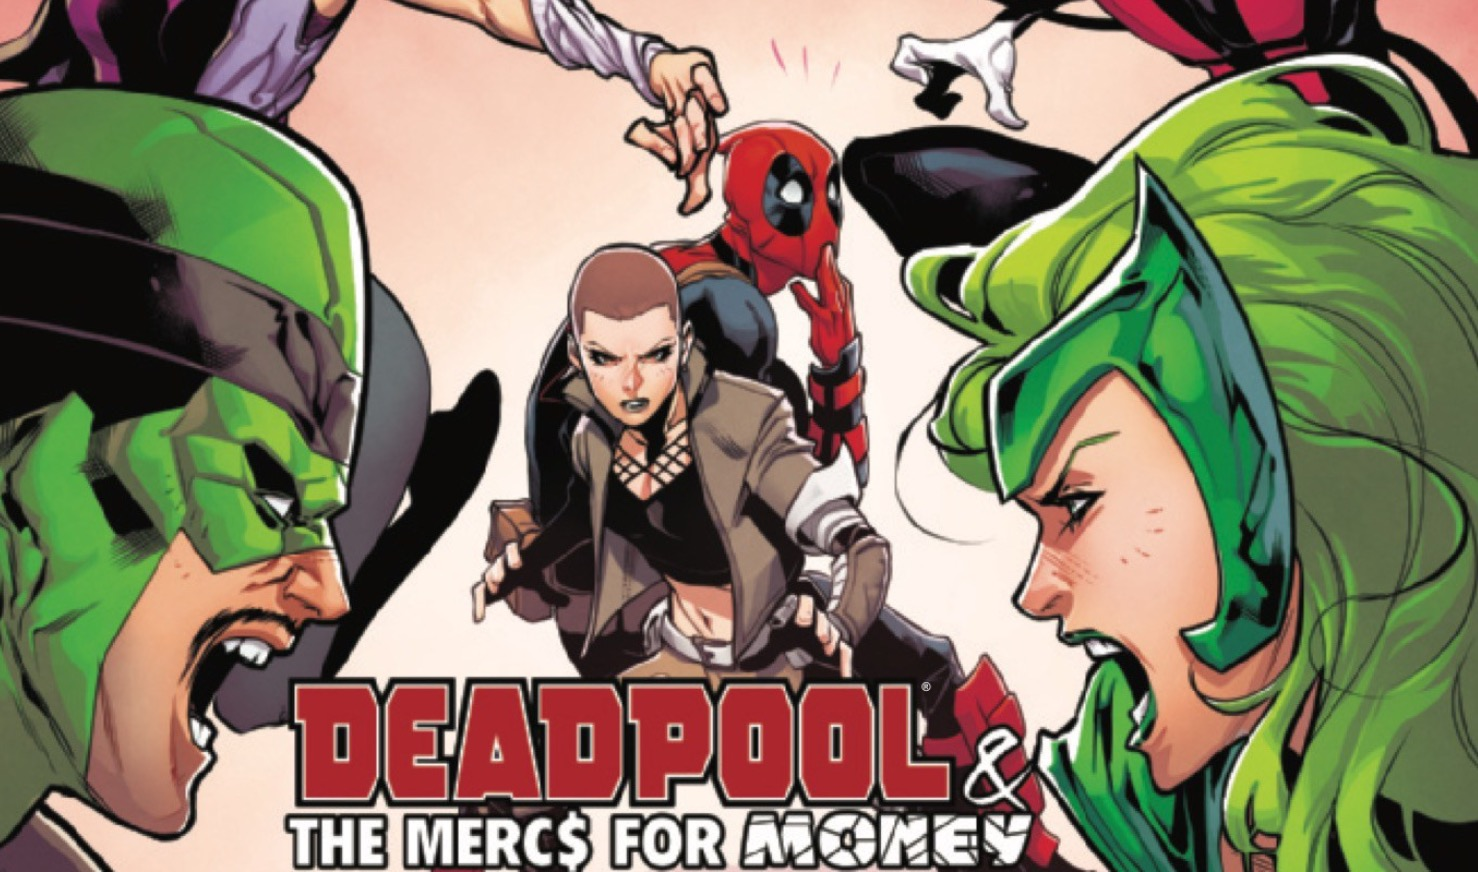 Marvel Preview: Deadpool and the Mercs for Money #7